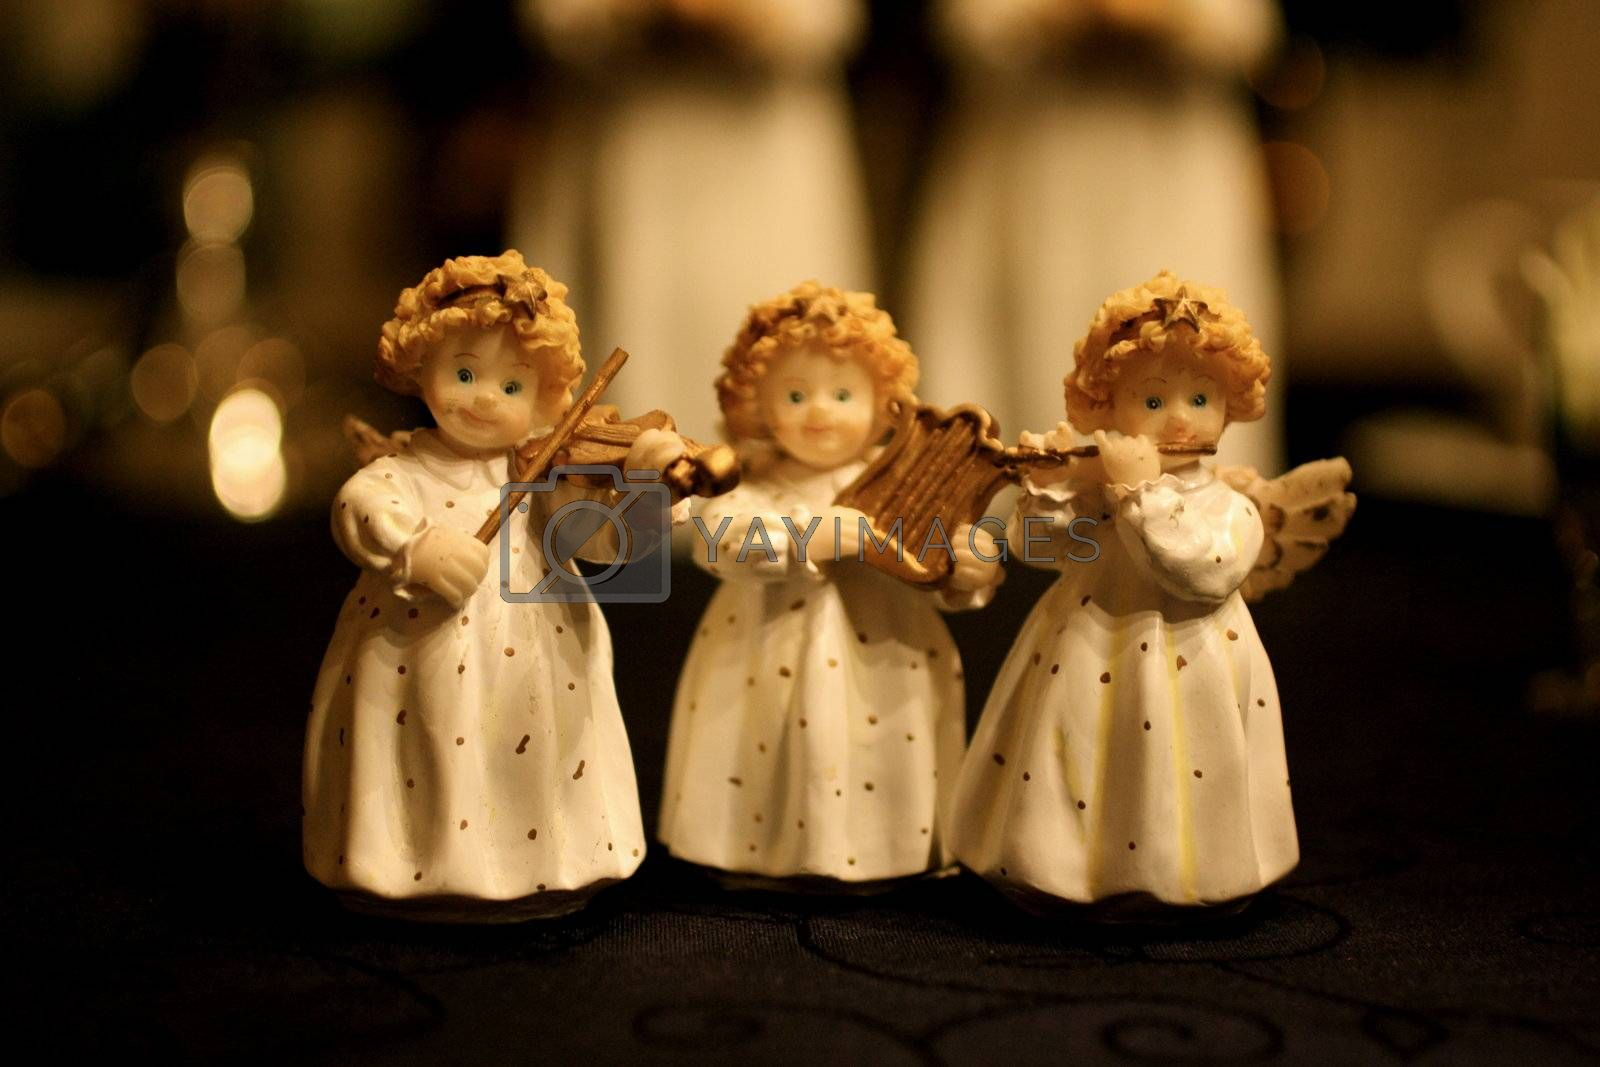 Angels on a table set for Christmas